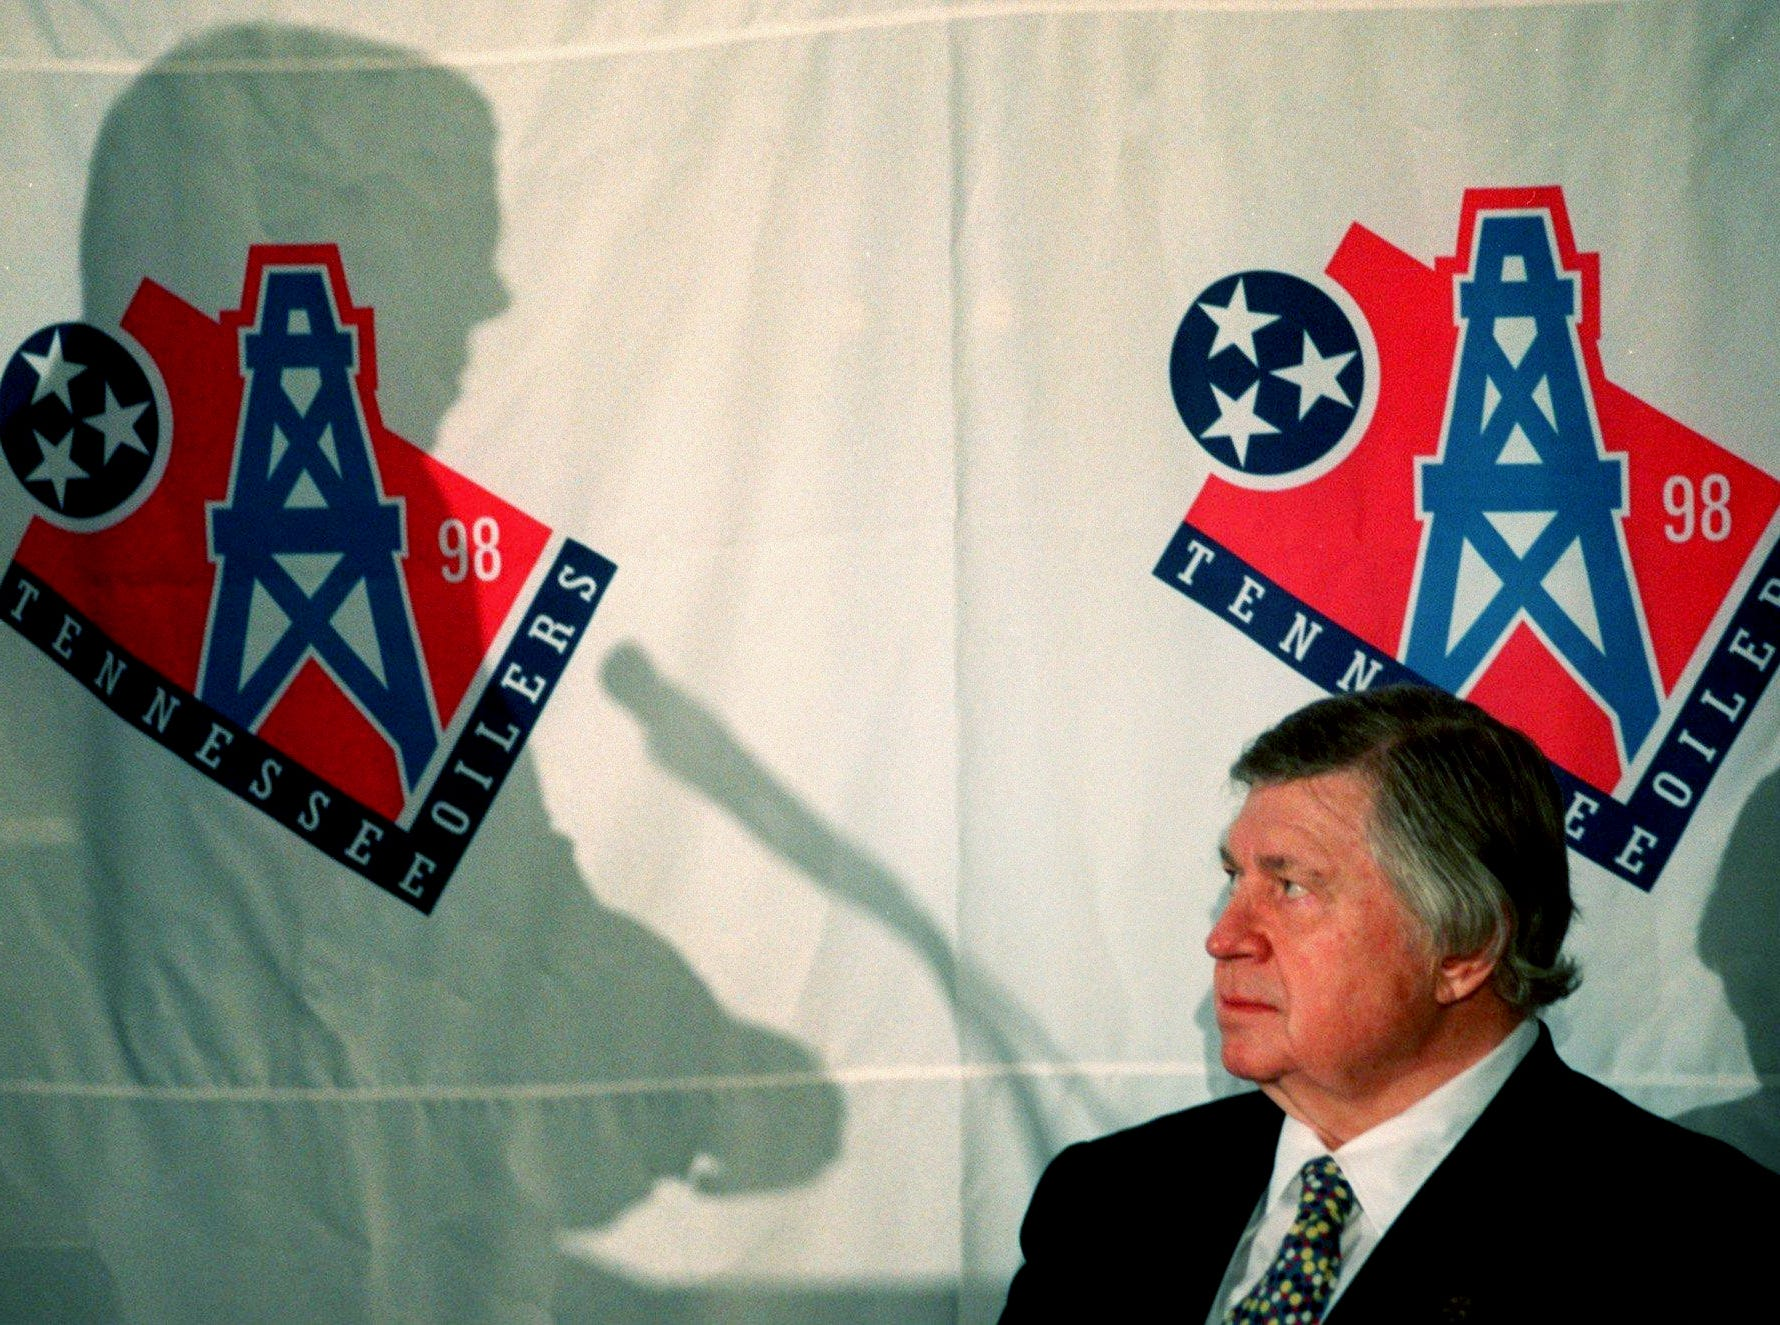 Tennessee Oilers owner Bud Adams, right, listens to Mayor Phil Bredesen as he discusses the change of the Oilers' nickname in the 1999 season during a press conference July 29, 1998.